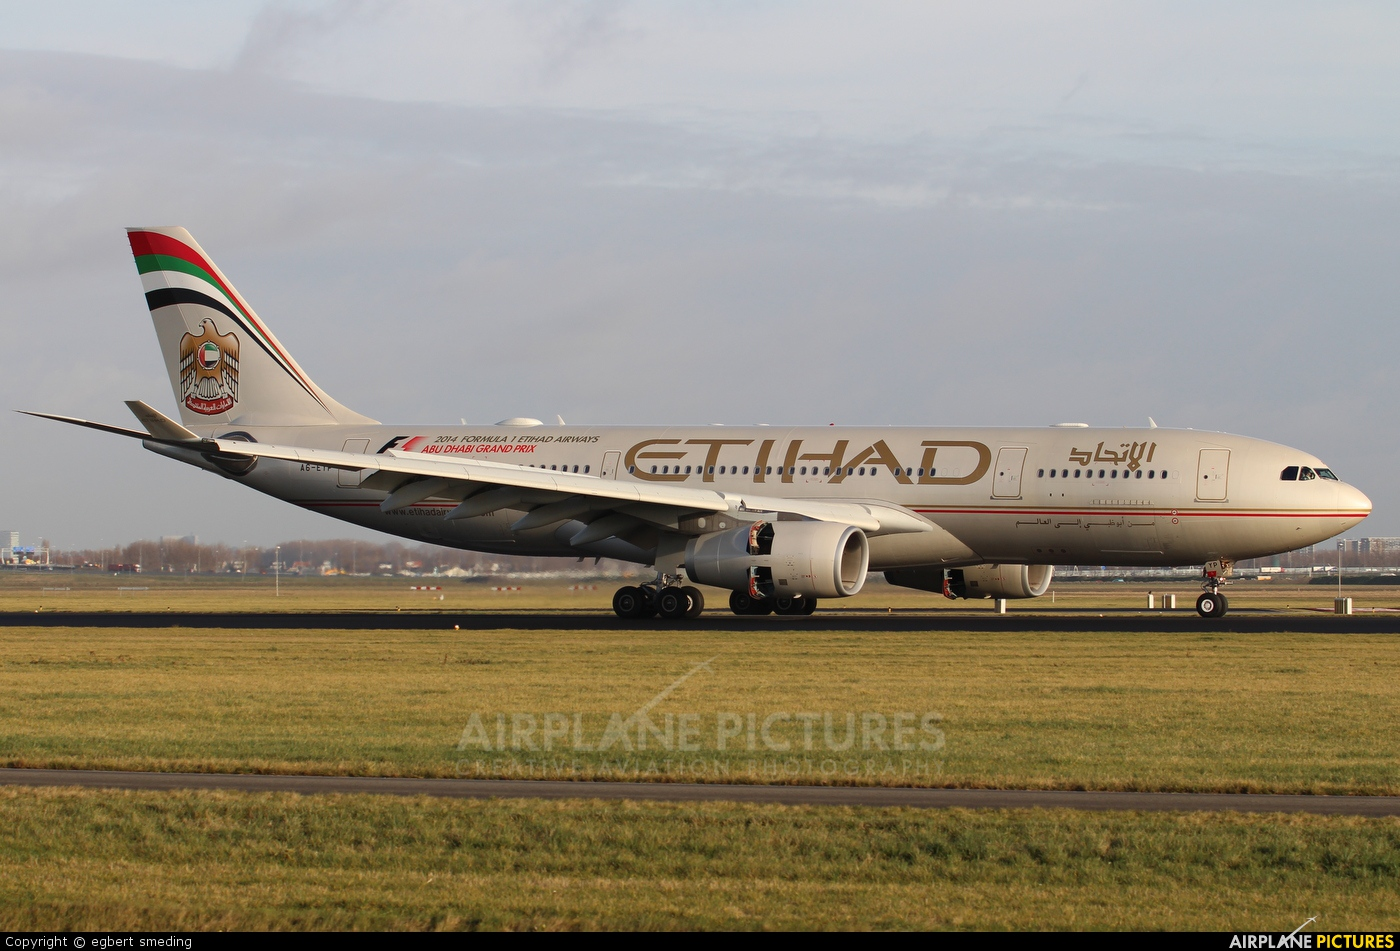 Etihad Airways A6-EYP aircraft at Amsterdam - Schiphol